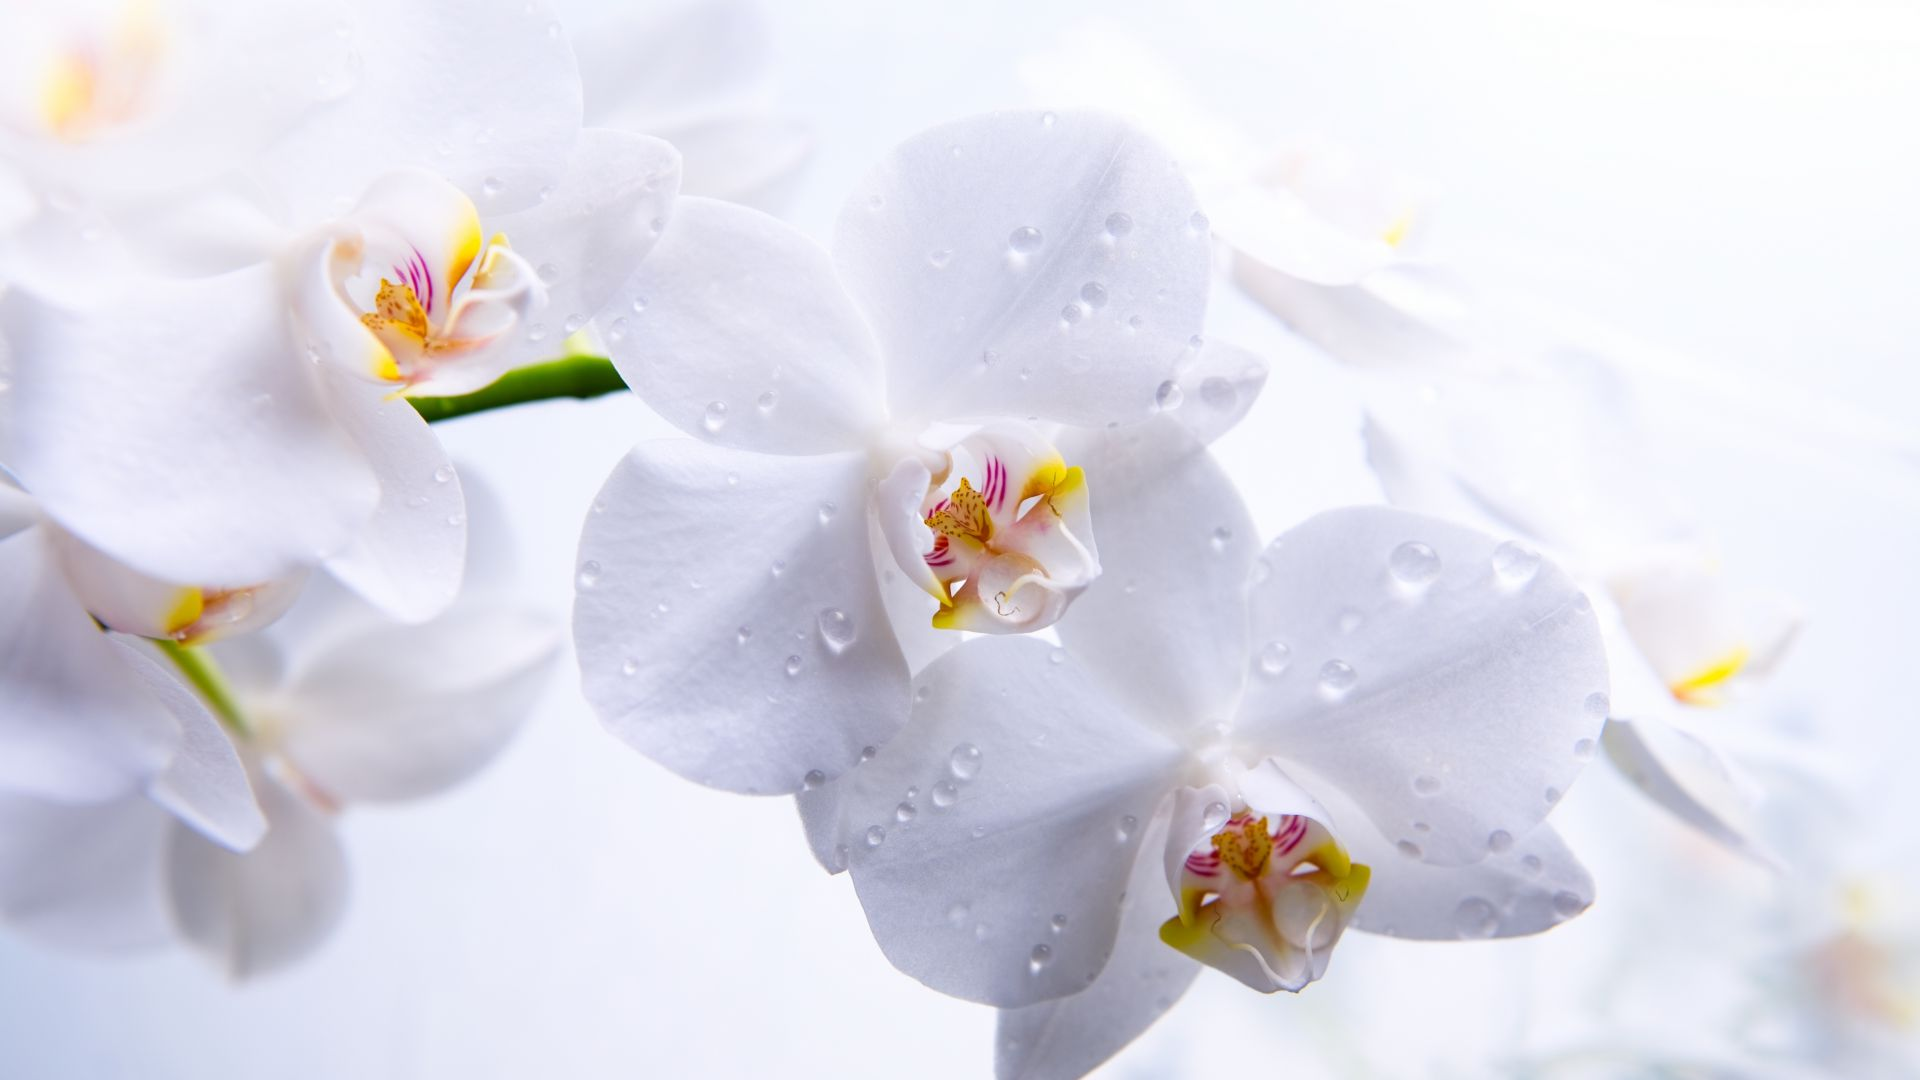 Orchid, 5k, 4k wallpaper, flowers, macro, white (horizontal)